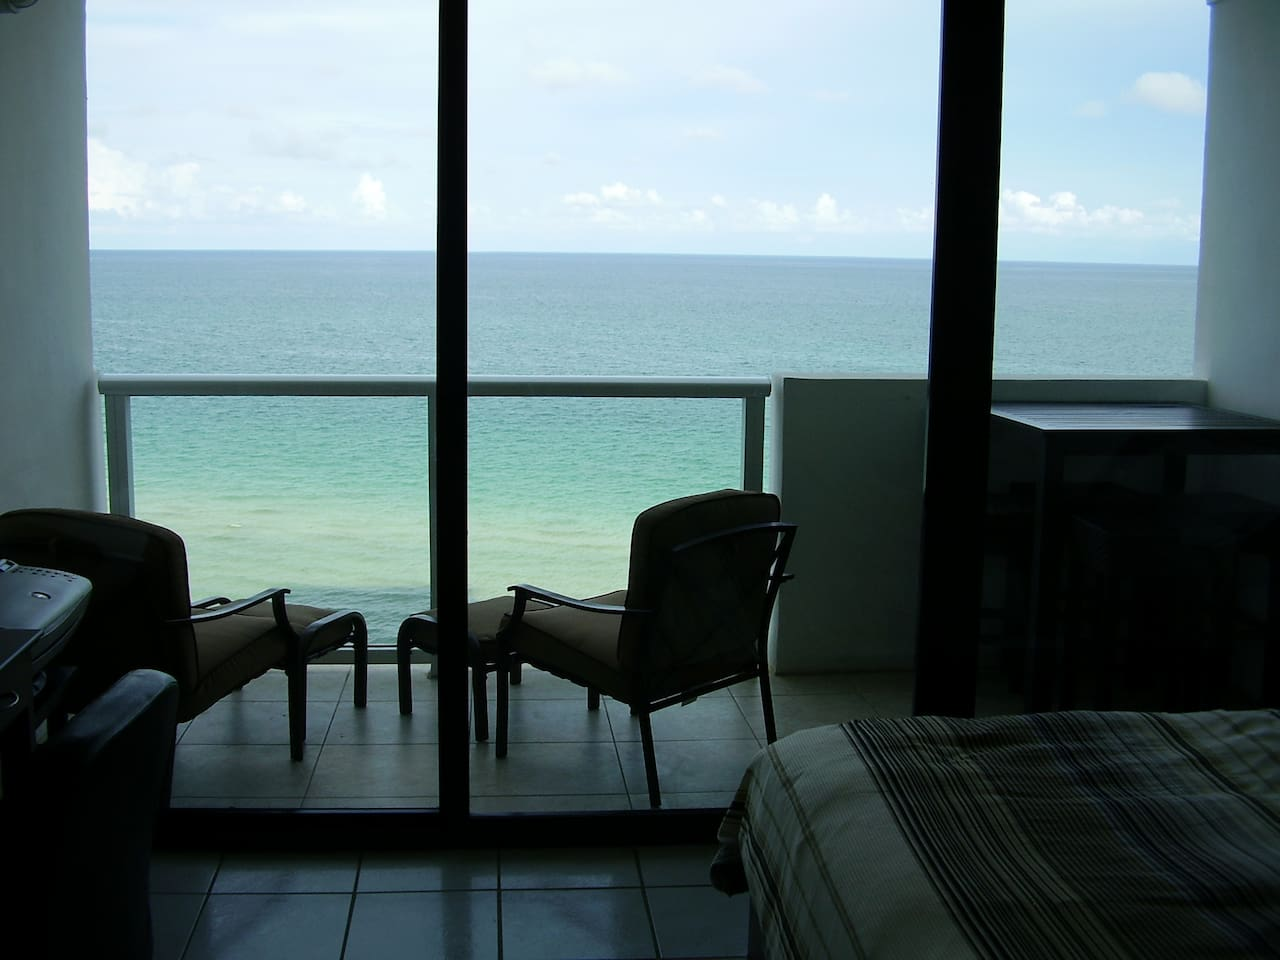 Recently renovated balcony with new furniture including a patio height table to enjoy the ocean while dining